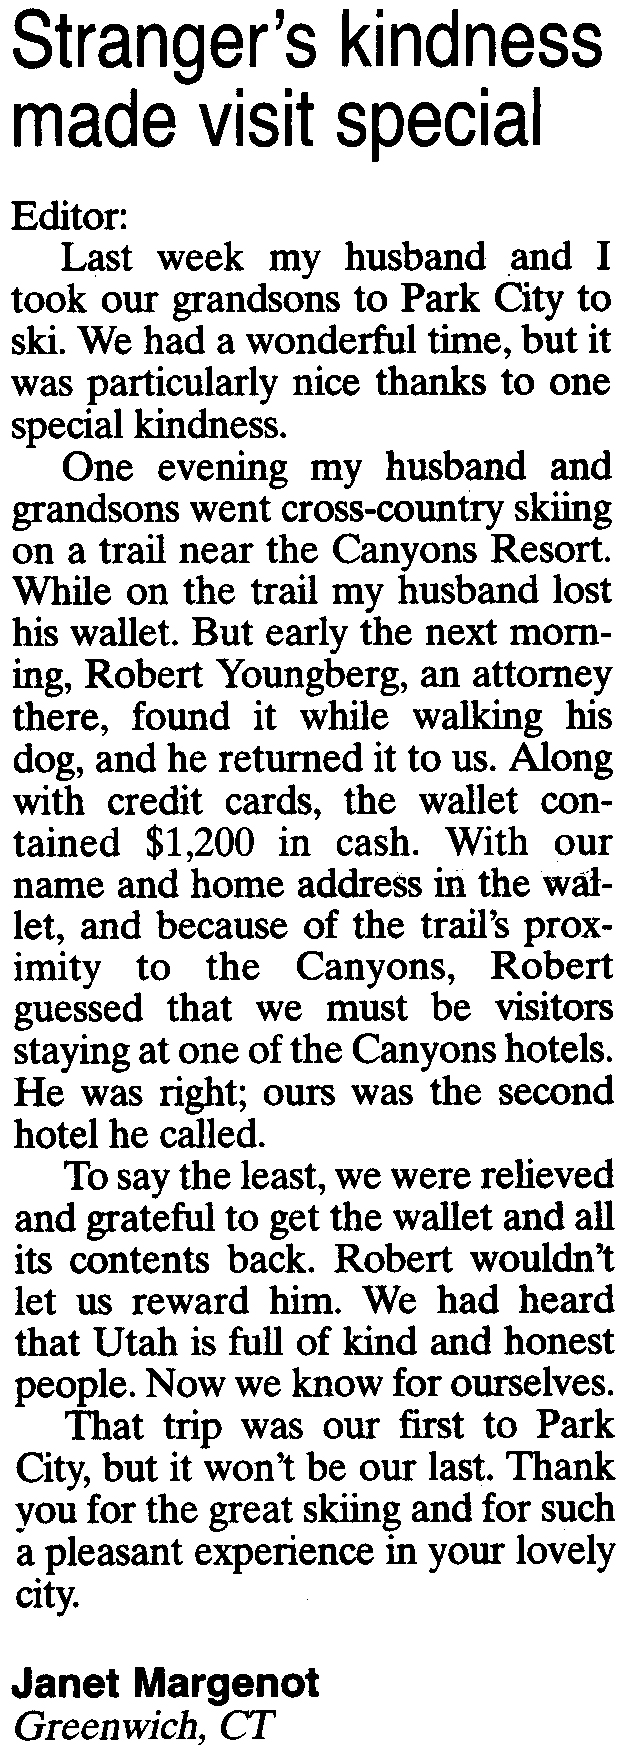 2011-Feb-16-Citizen: Rob A. Youngberg found and returned wallet